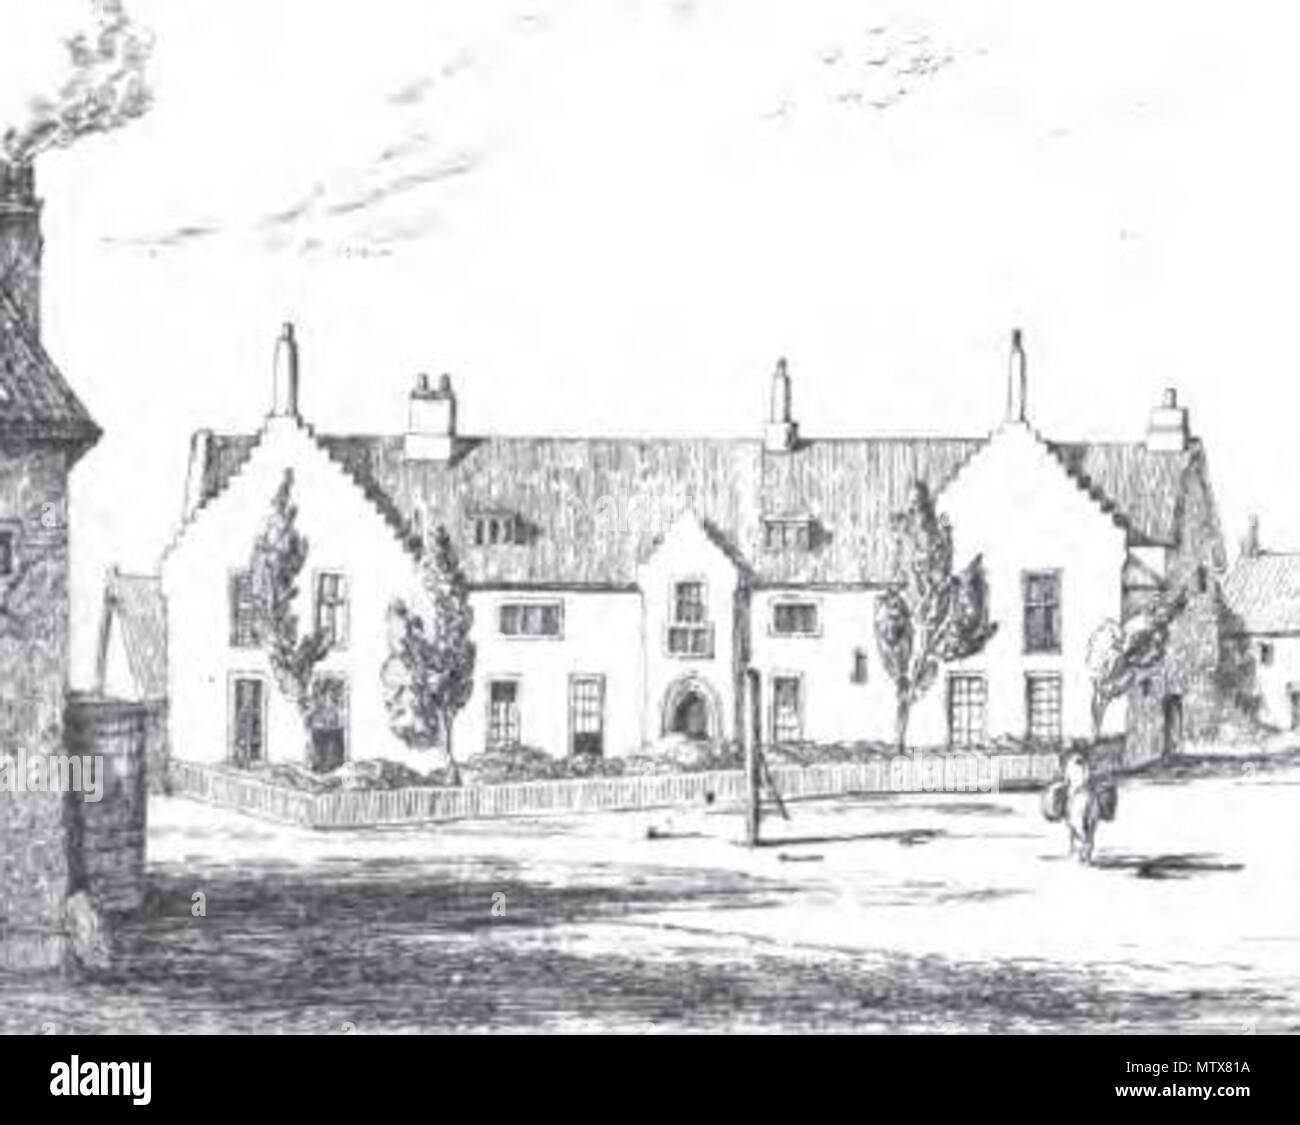 . English: Illustration of Gresham's School, Holt, from John William Burgon's The Life and Times of Sir Thomas Gresham (1839) 'from a sketch made on the spot in 1838' (detail). 1839 engraving from a sketch dated 1838. Unknown 454 Old School House, Holt, 1838 - Stock Image